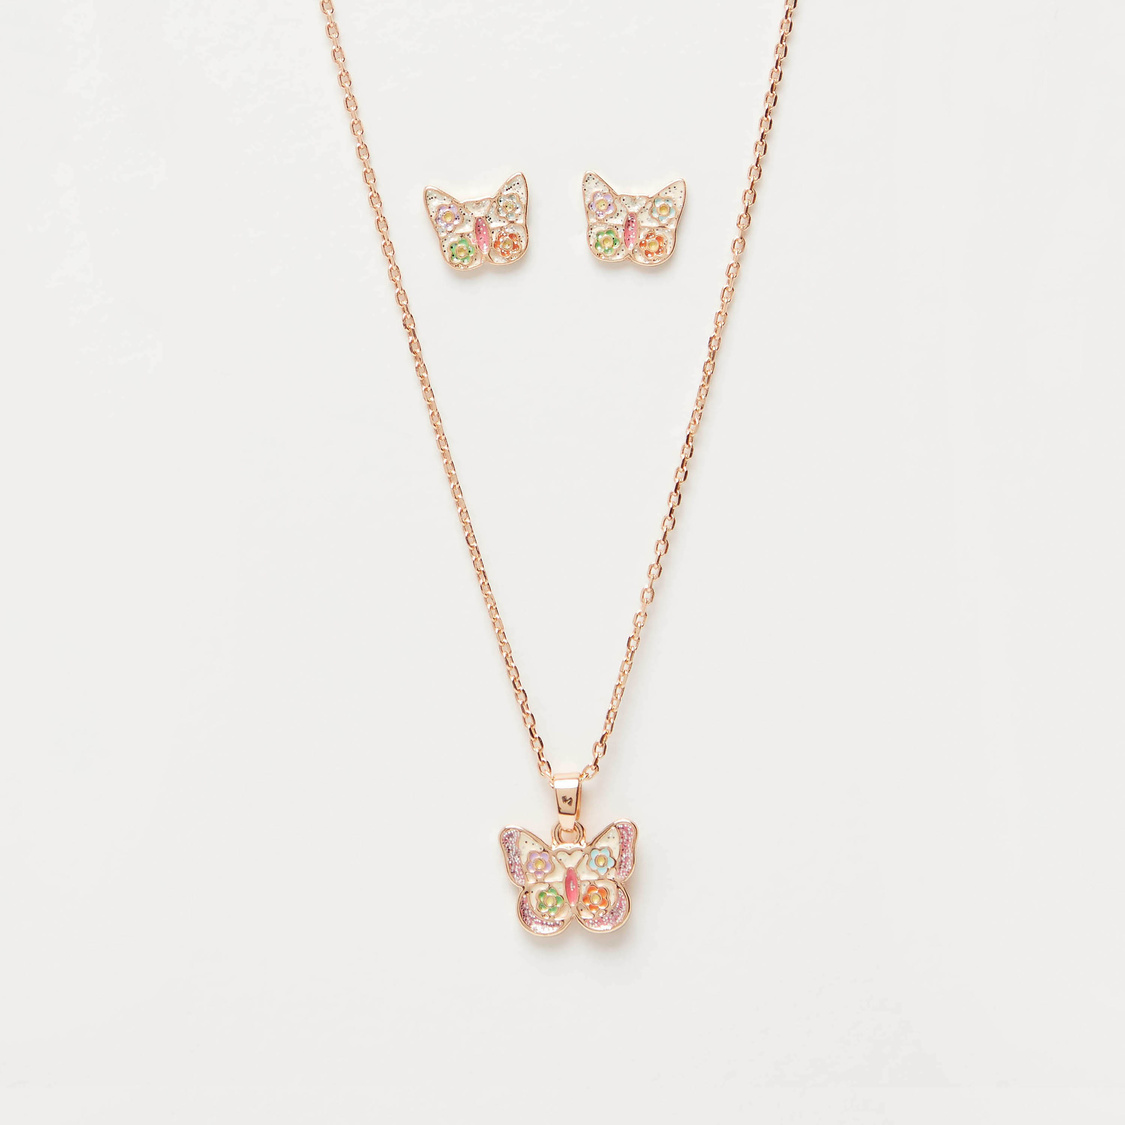 Embellished Butterfly Necklace and Stud Earrings Set